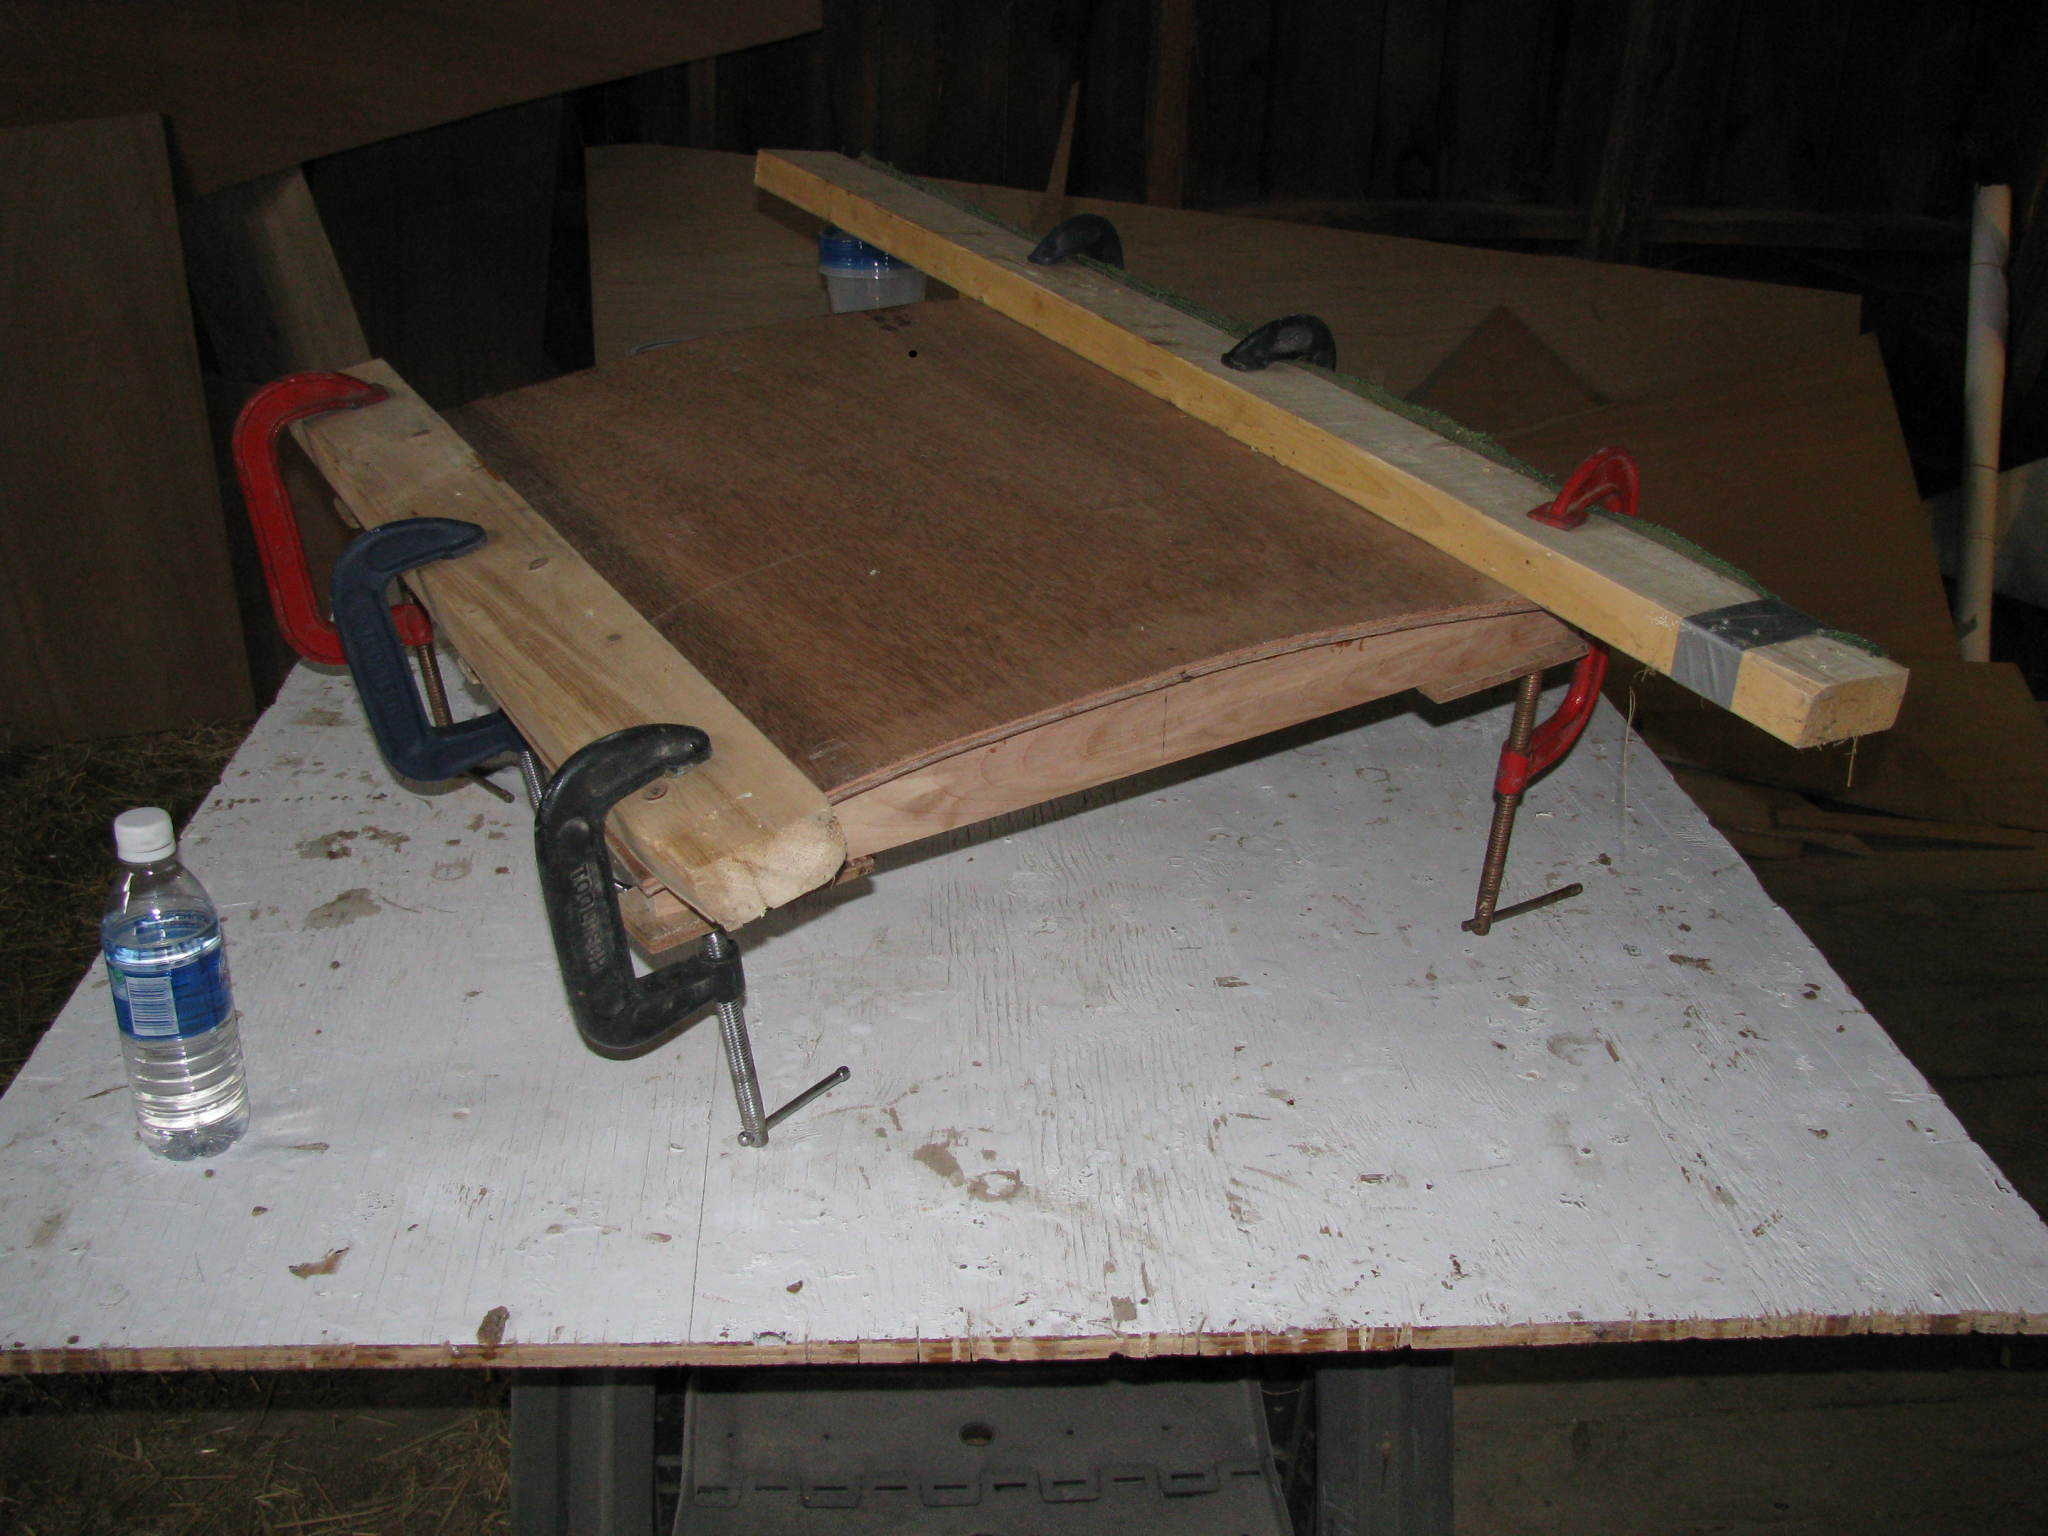 gluing the companionway hatch